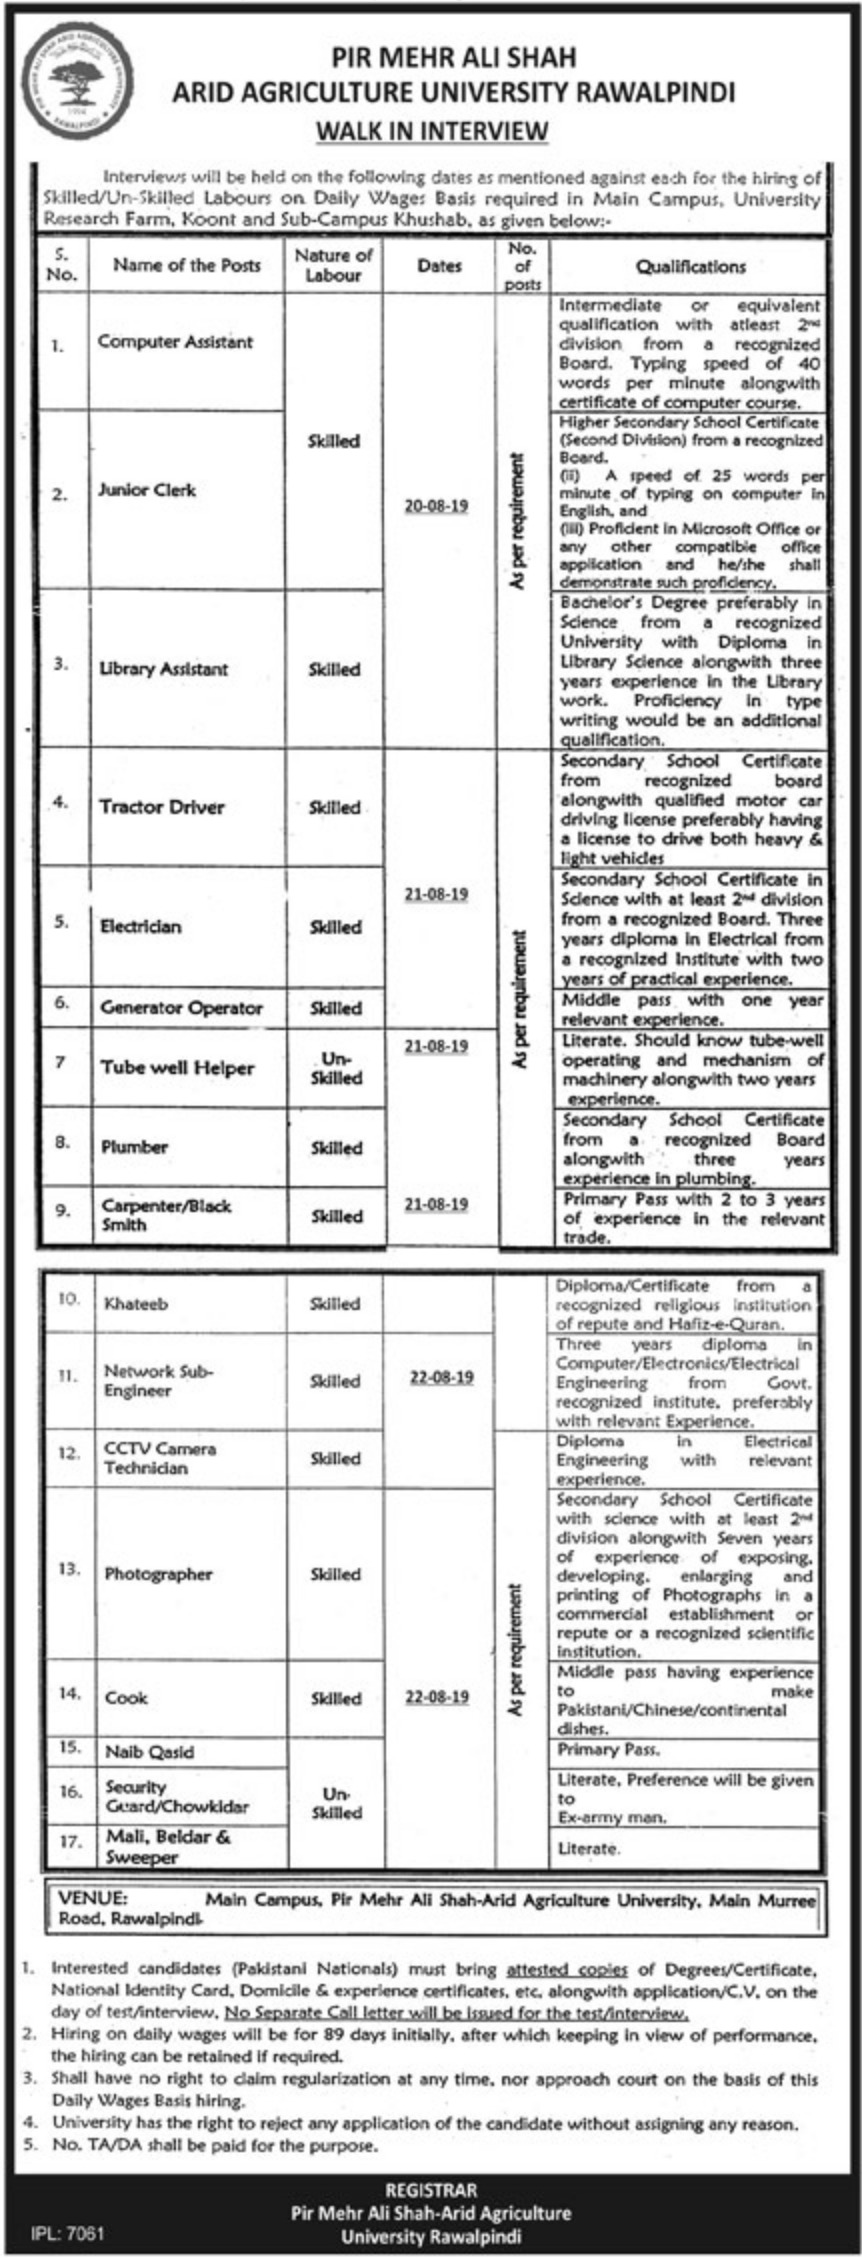 PMAS Arid Agriculture University Rawalpindi Jobs 2019 Walk-In-Interview